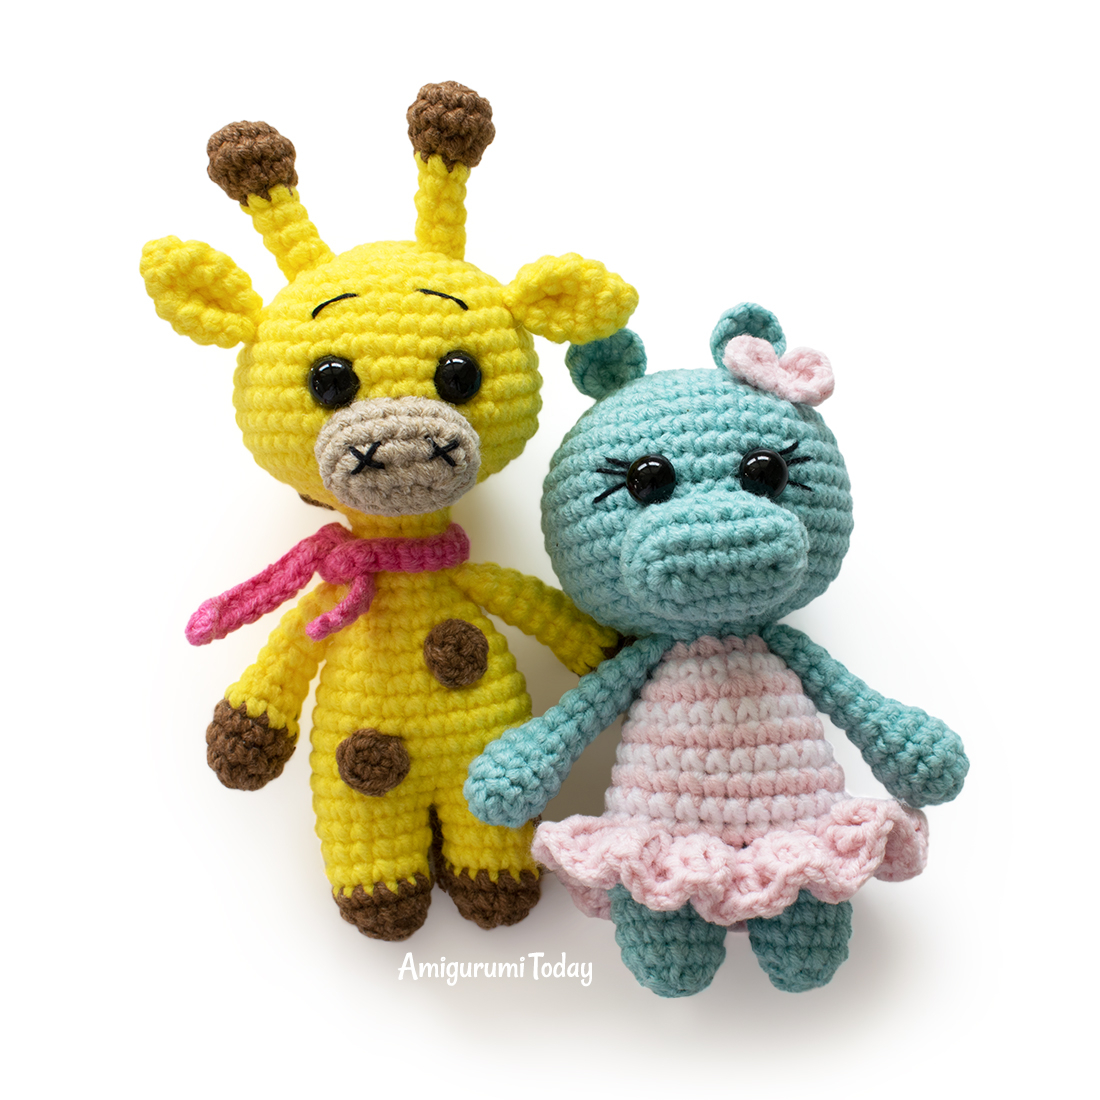 la8fcf5b4 amigurumi horse and donkey free crochet pattern your ... | 1100x1100